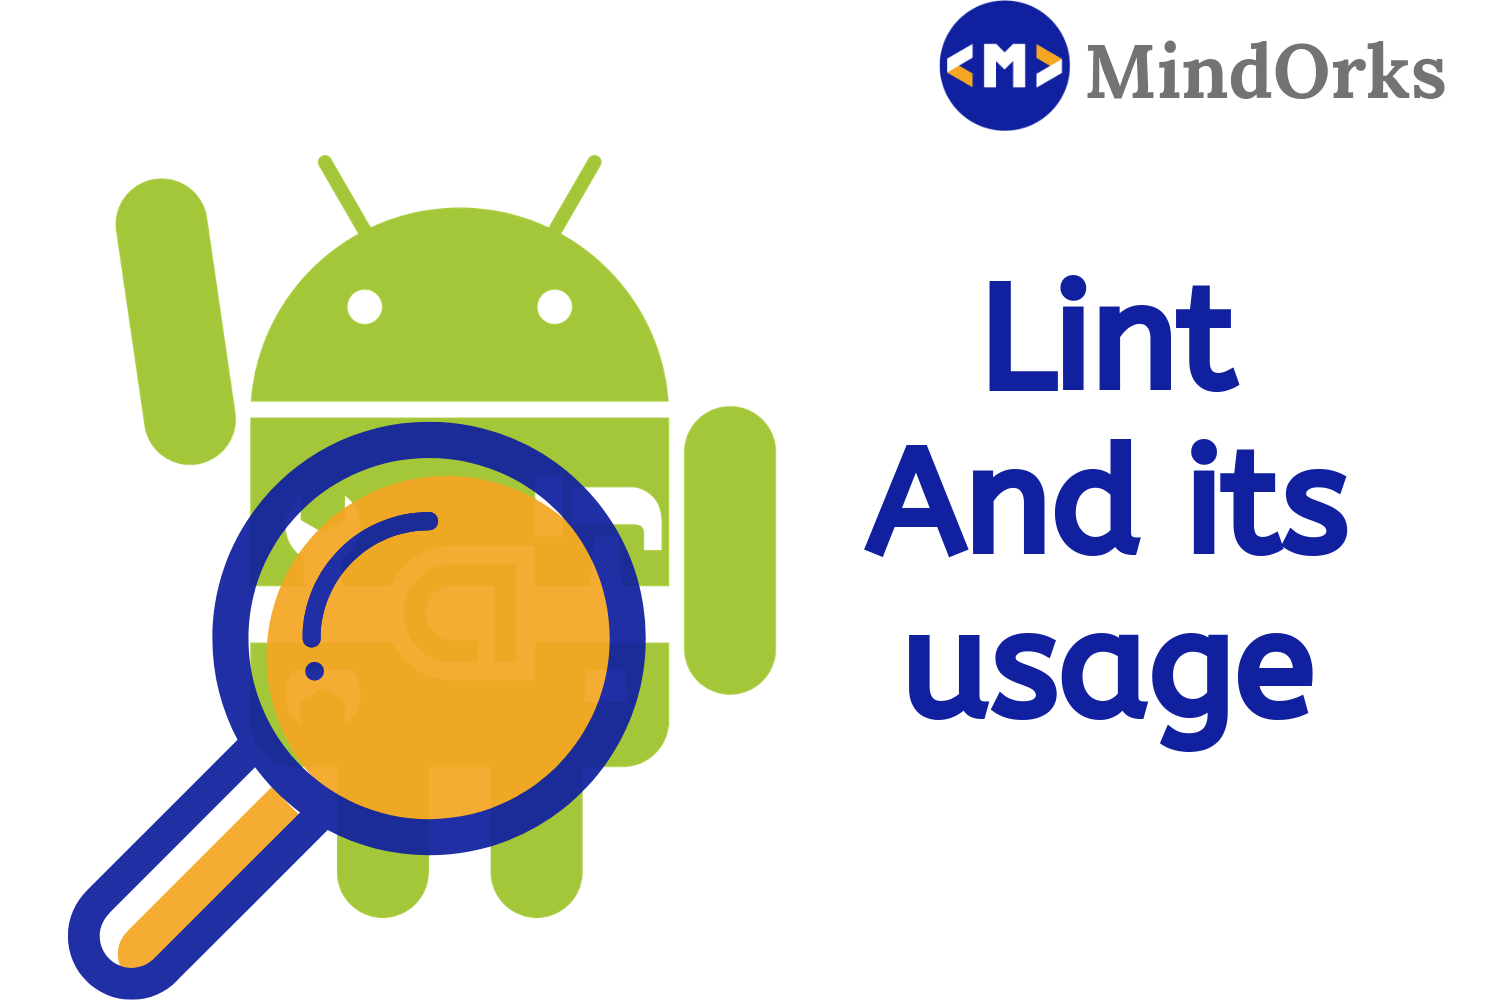 What is Lint? What is it used for?